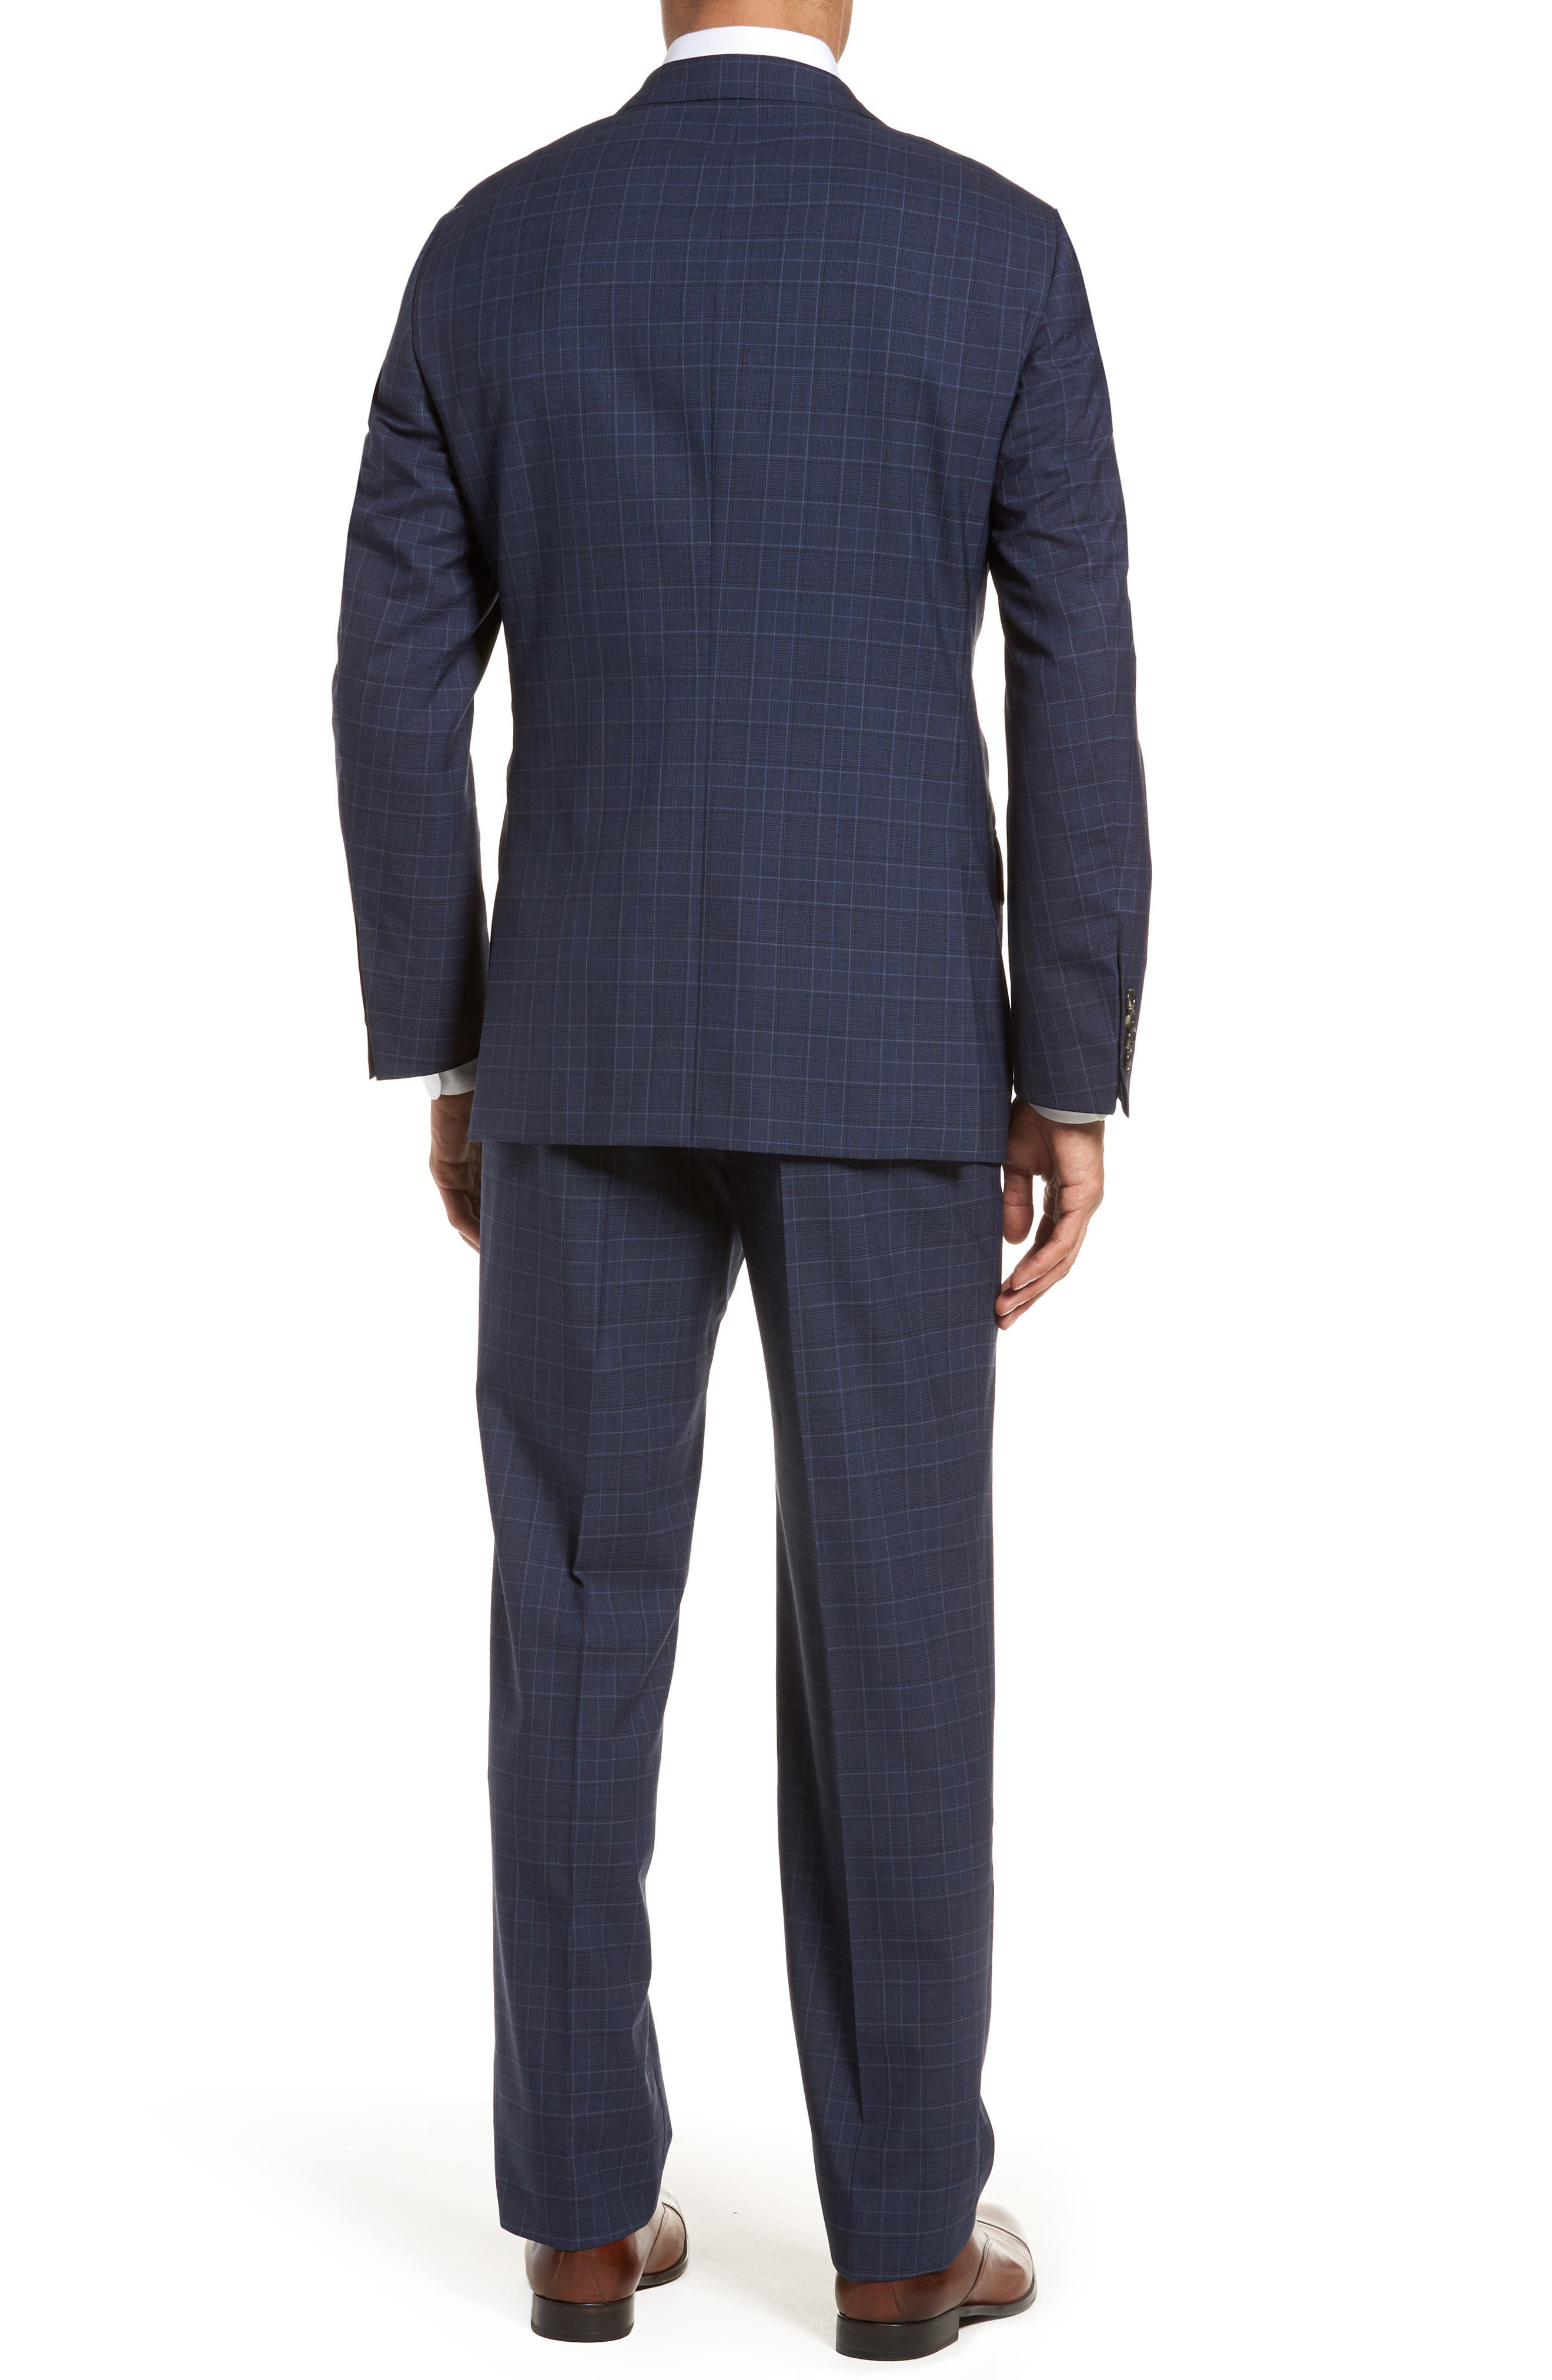 HICKEY FREEMAN,                             Classic B Fit Plaid Wool Suit,                             Alternate thumbnail 2, color,                             400